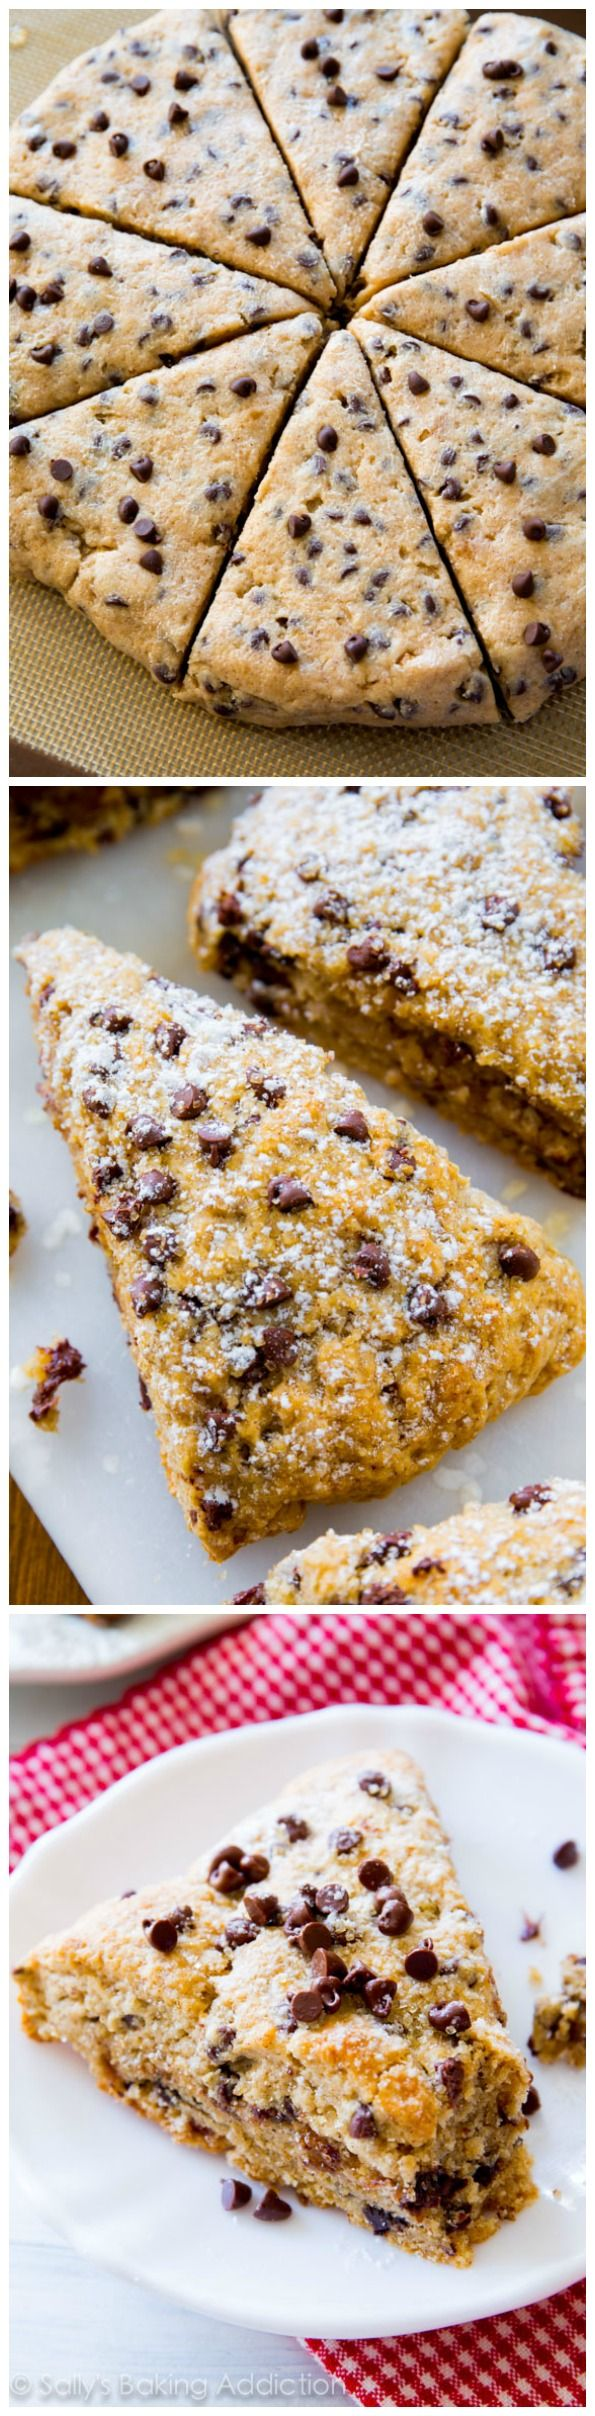 Melt-in-your-mouth chocolate chip scones.